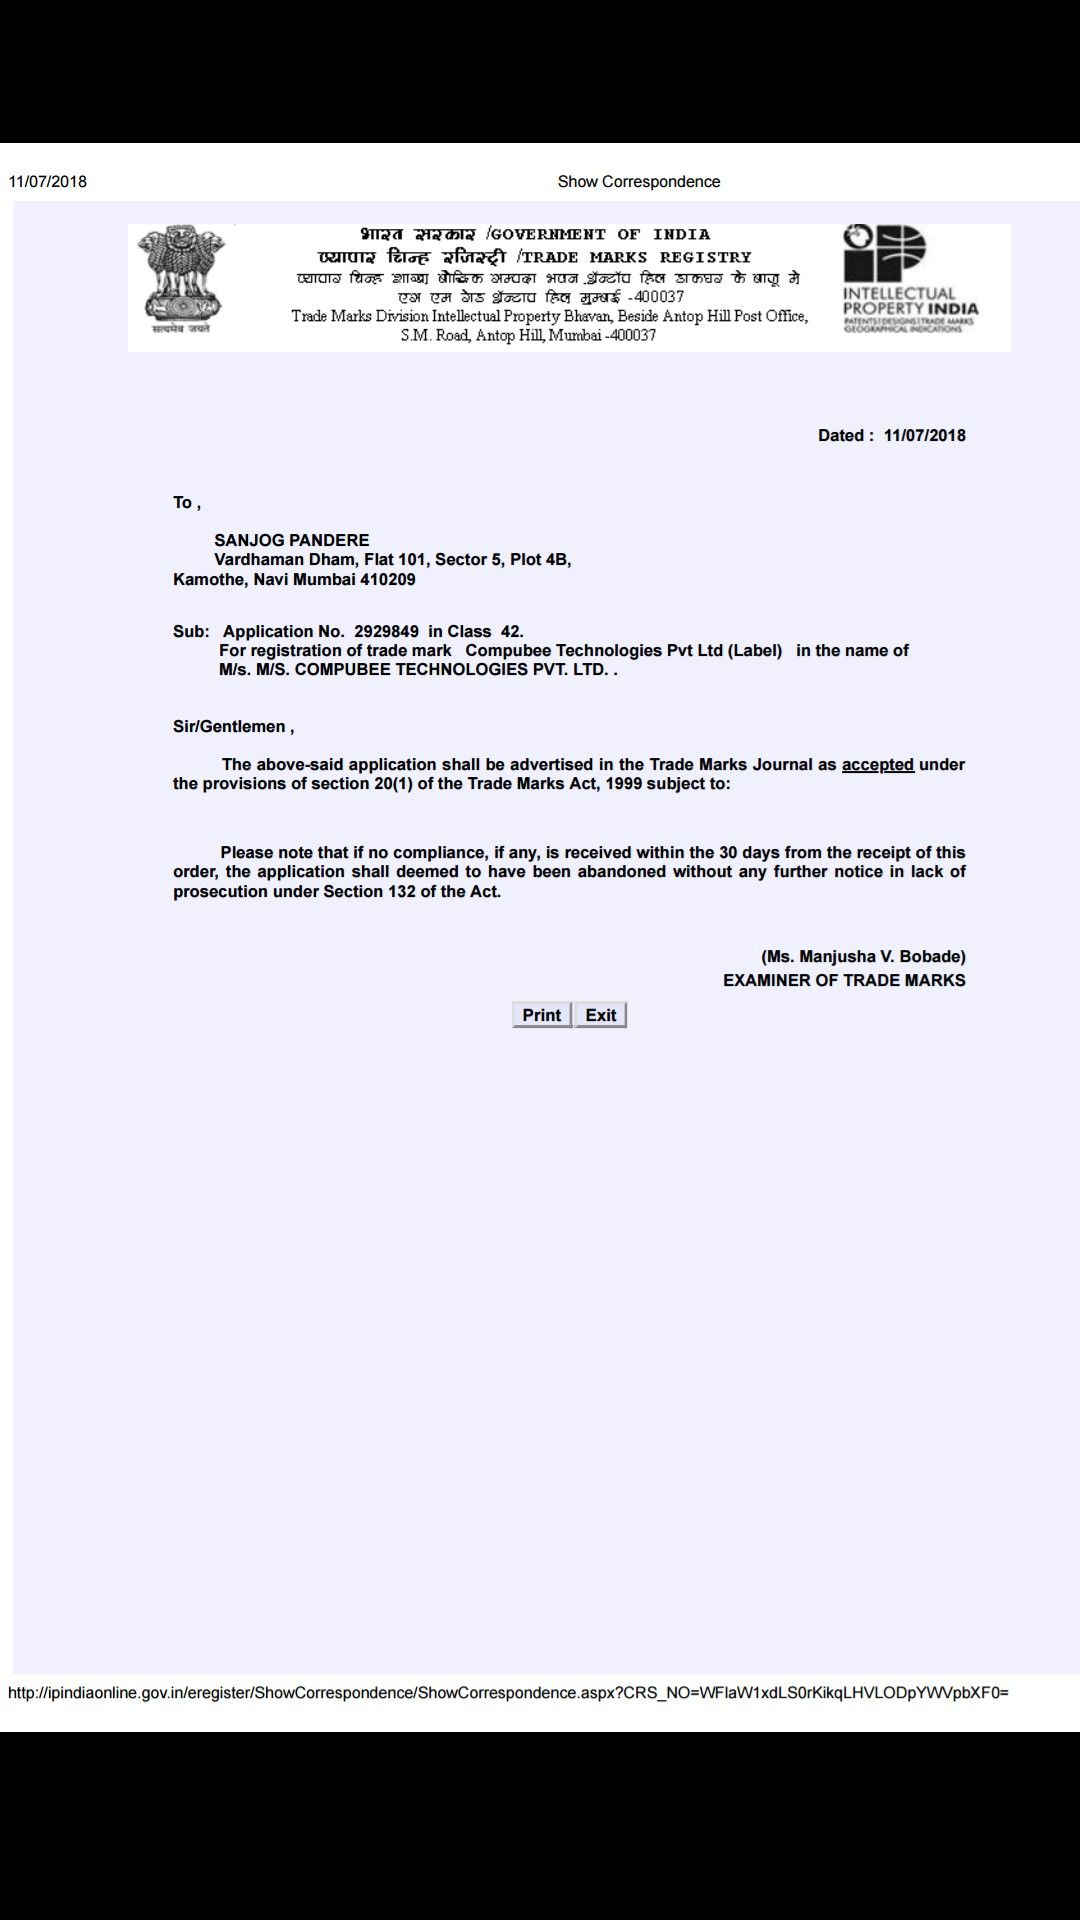 Compubee Technologies Pvt Ltds Trademark Registration Has Been Accepted By